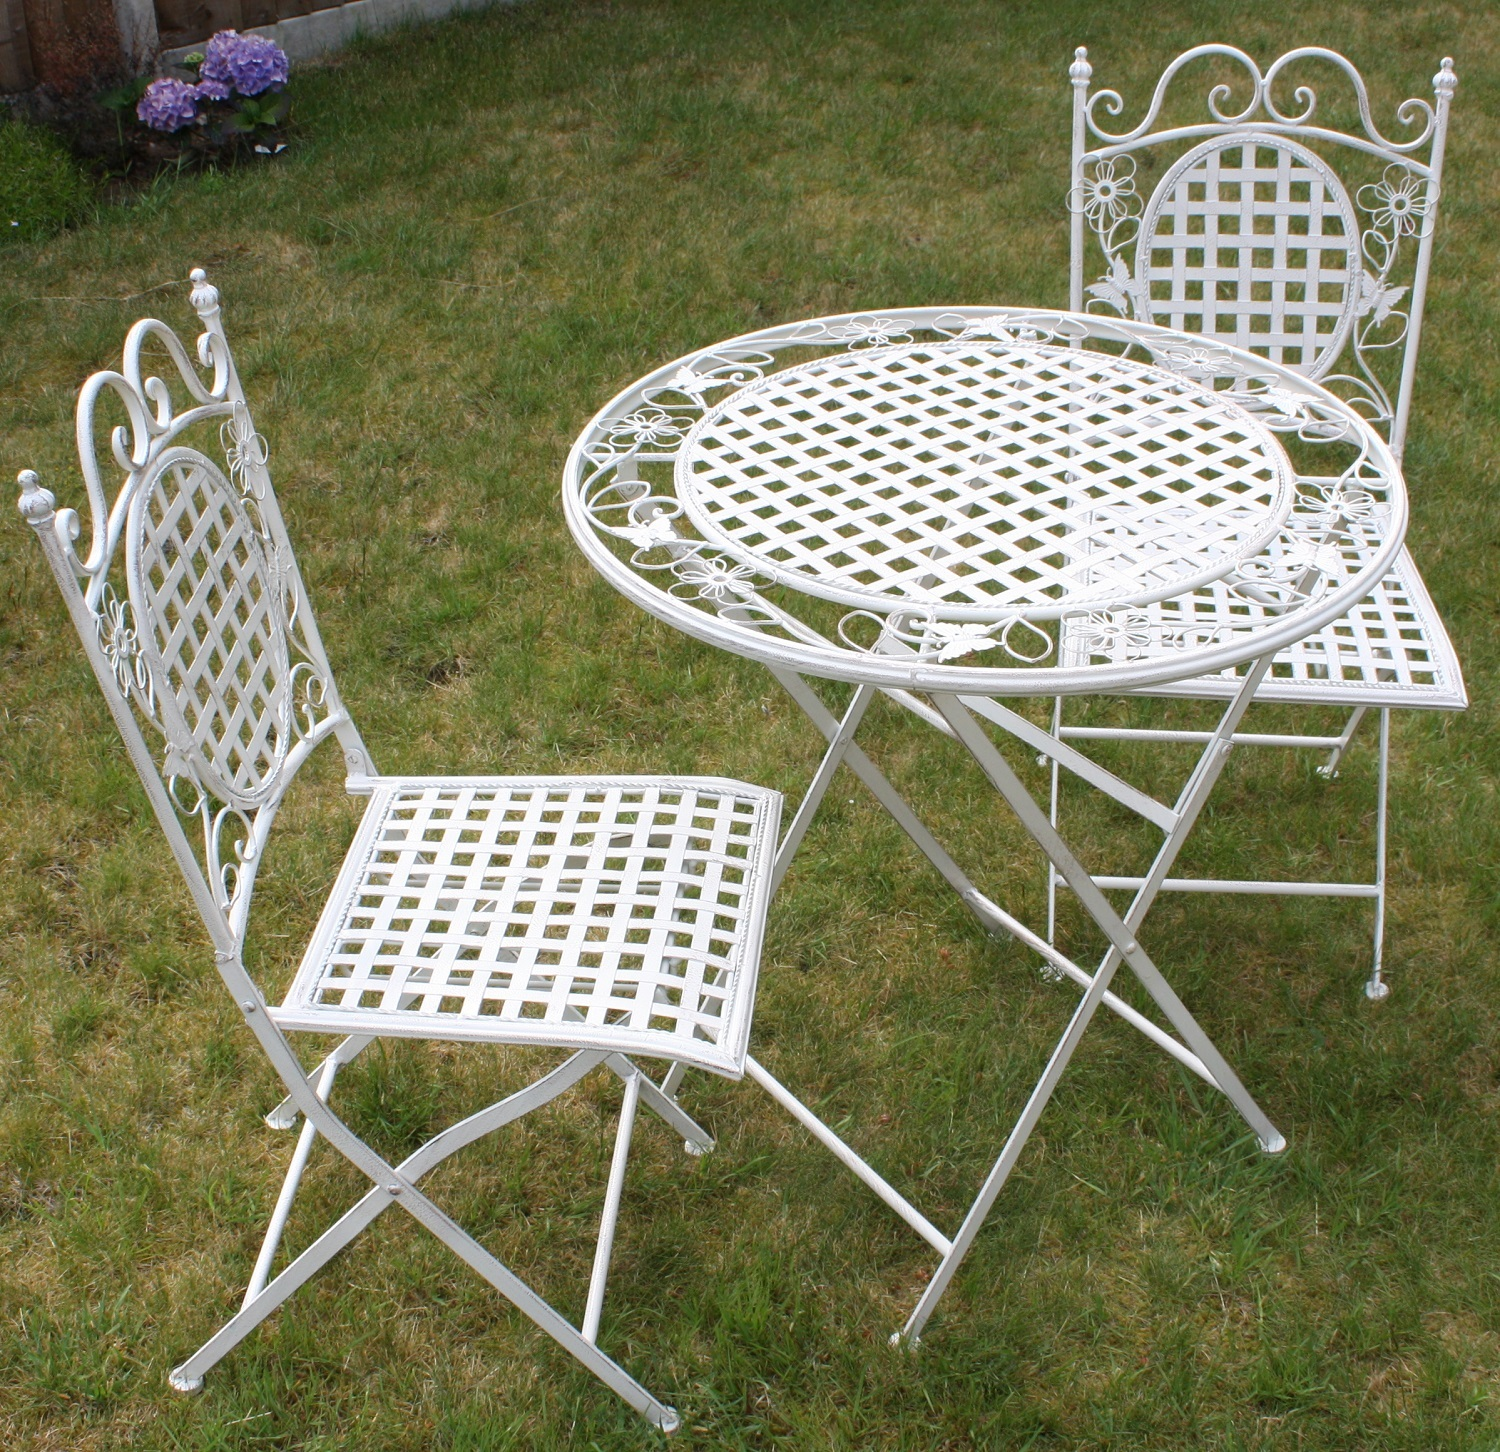 Garden Table And Chairs Set Metal: WHITE FLORAL OUTDOOR FOLDING METAL TABLE AND SQUARE CHAIRS